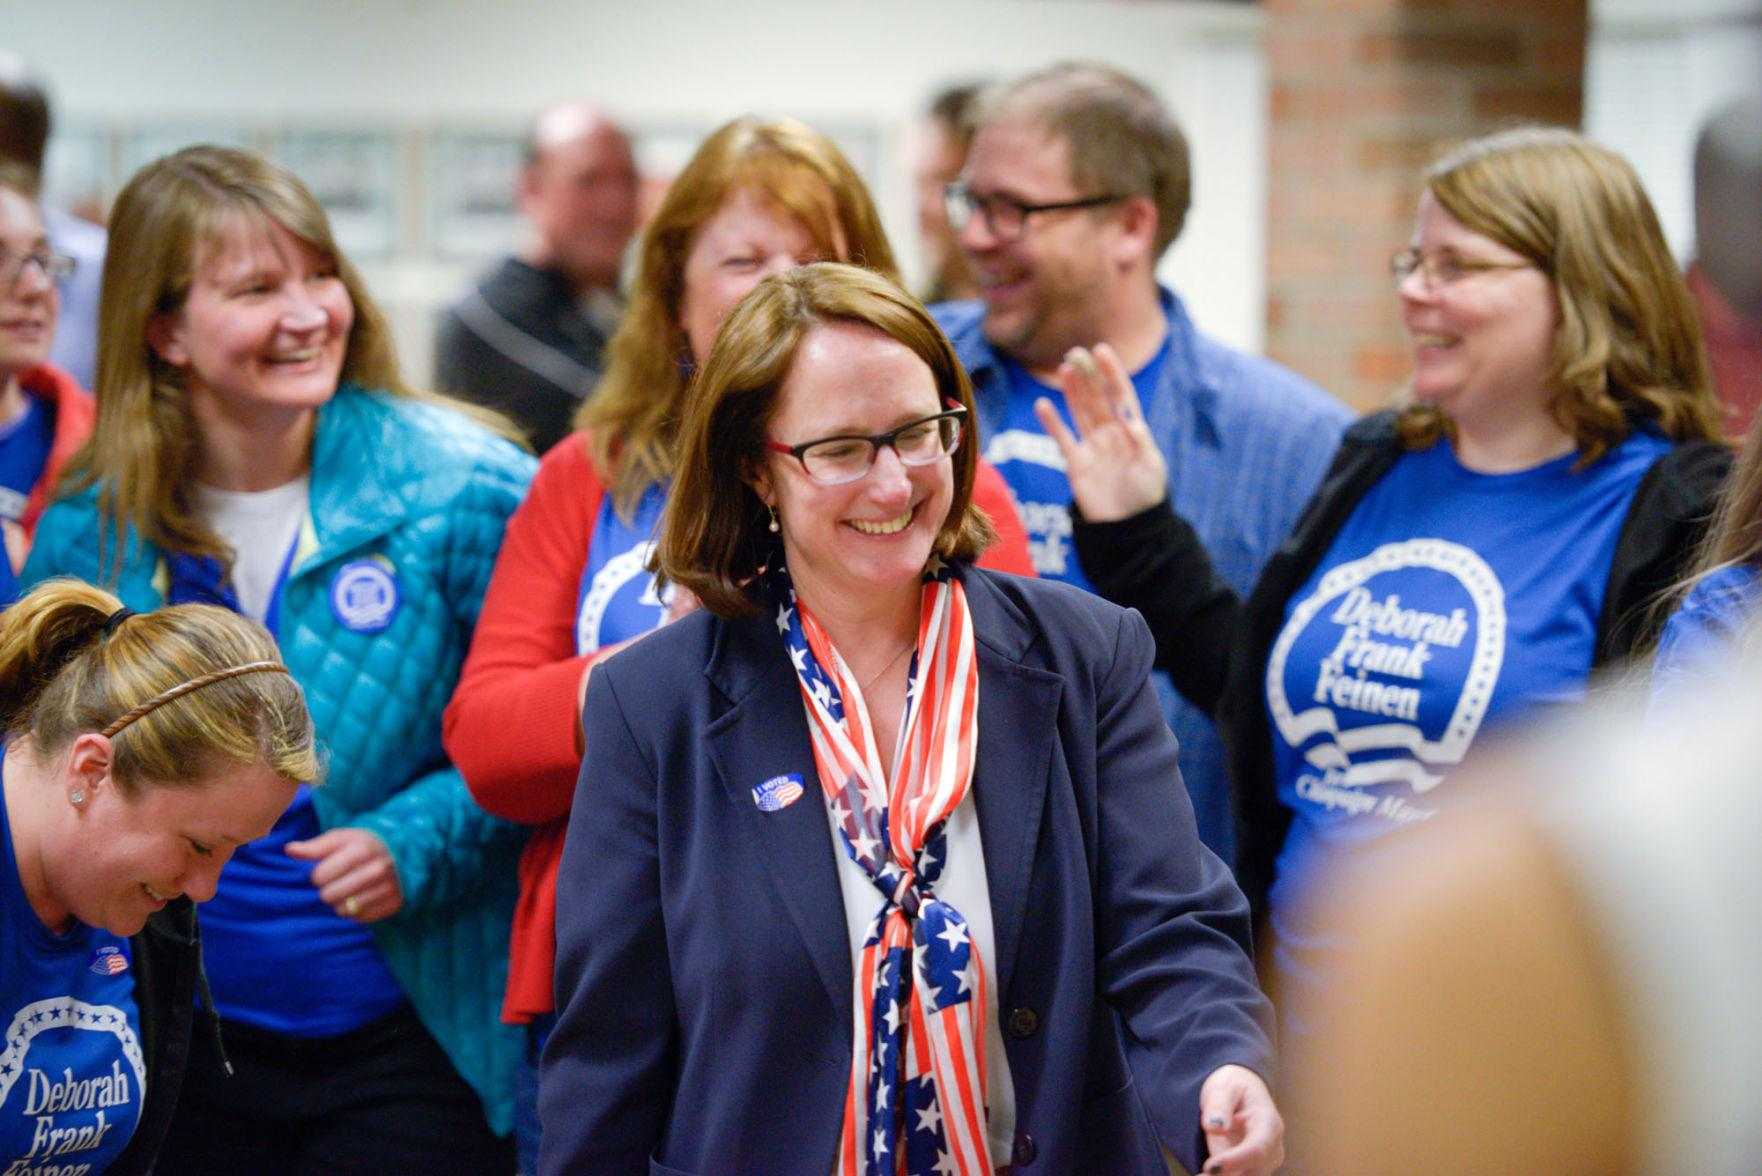 Deborah Frank Feinen smiles as she walks into the room to be greeted by her supporters and interviewed by the media at the Brookens Center on Tuesday.